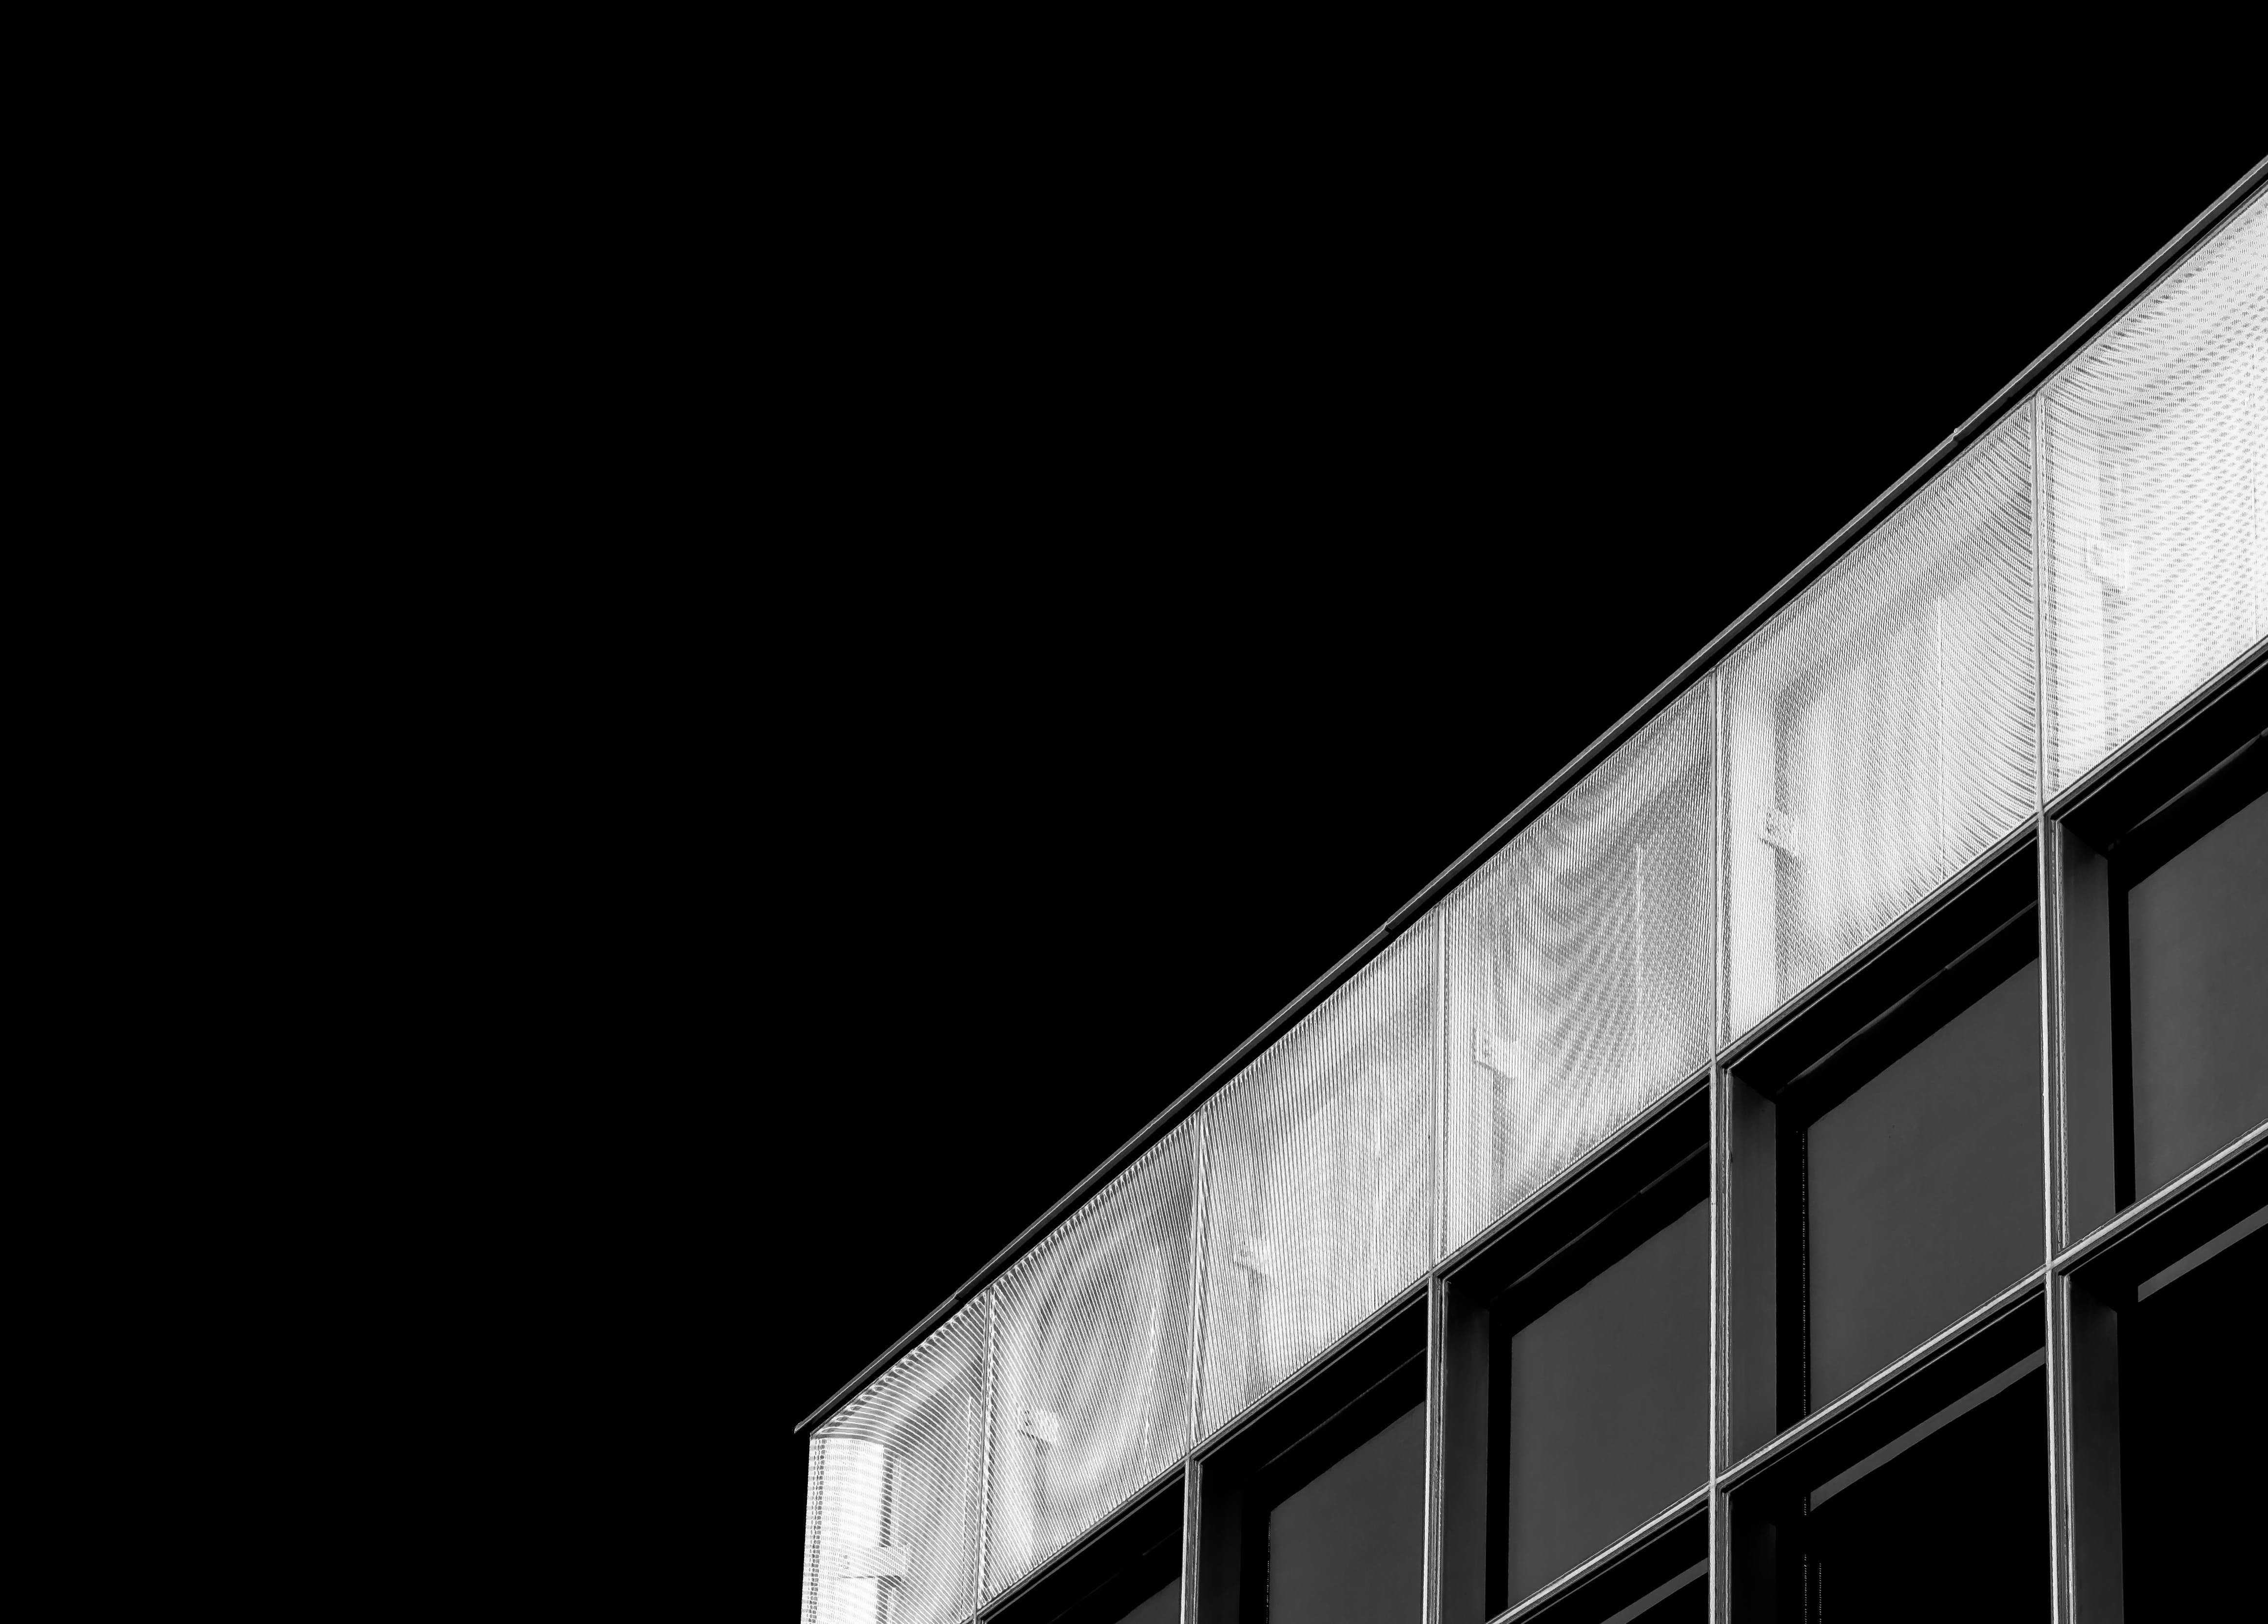 Free stock photo of building, architecture, window, black and white